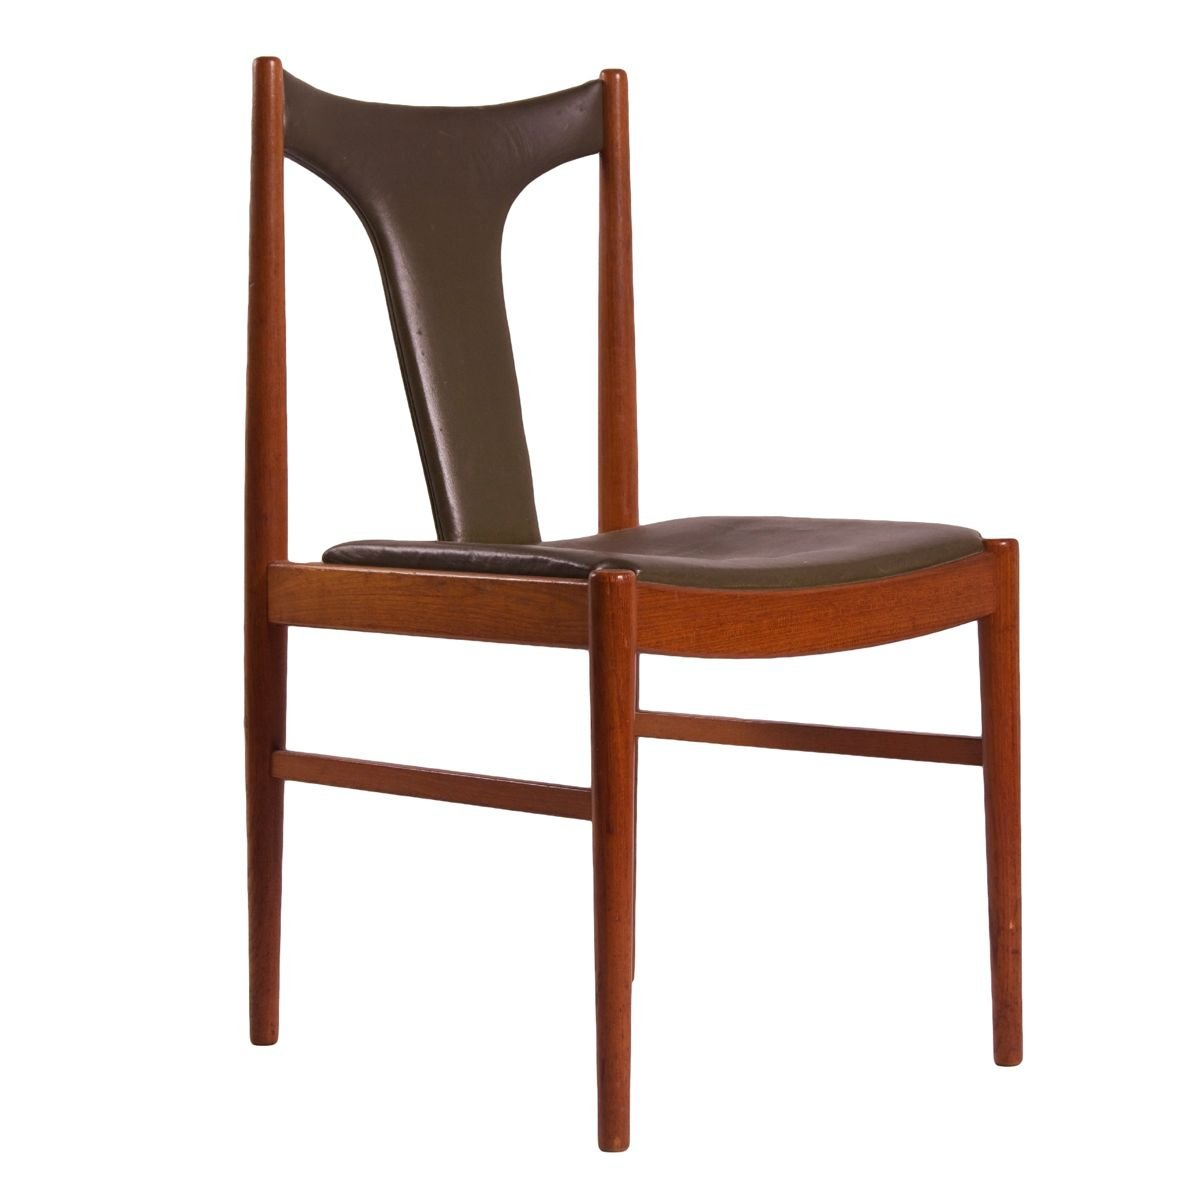 danish dining chair by arne vodder for sibast 1960s for sale at pamono. Black Bedroom Furniture Sets. Home Design Ideas